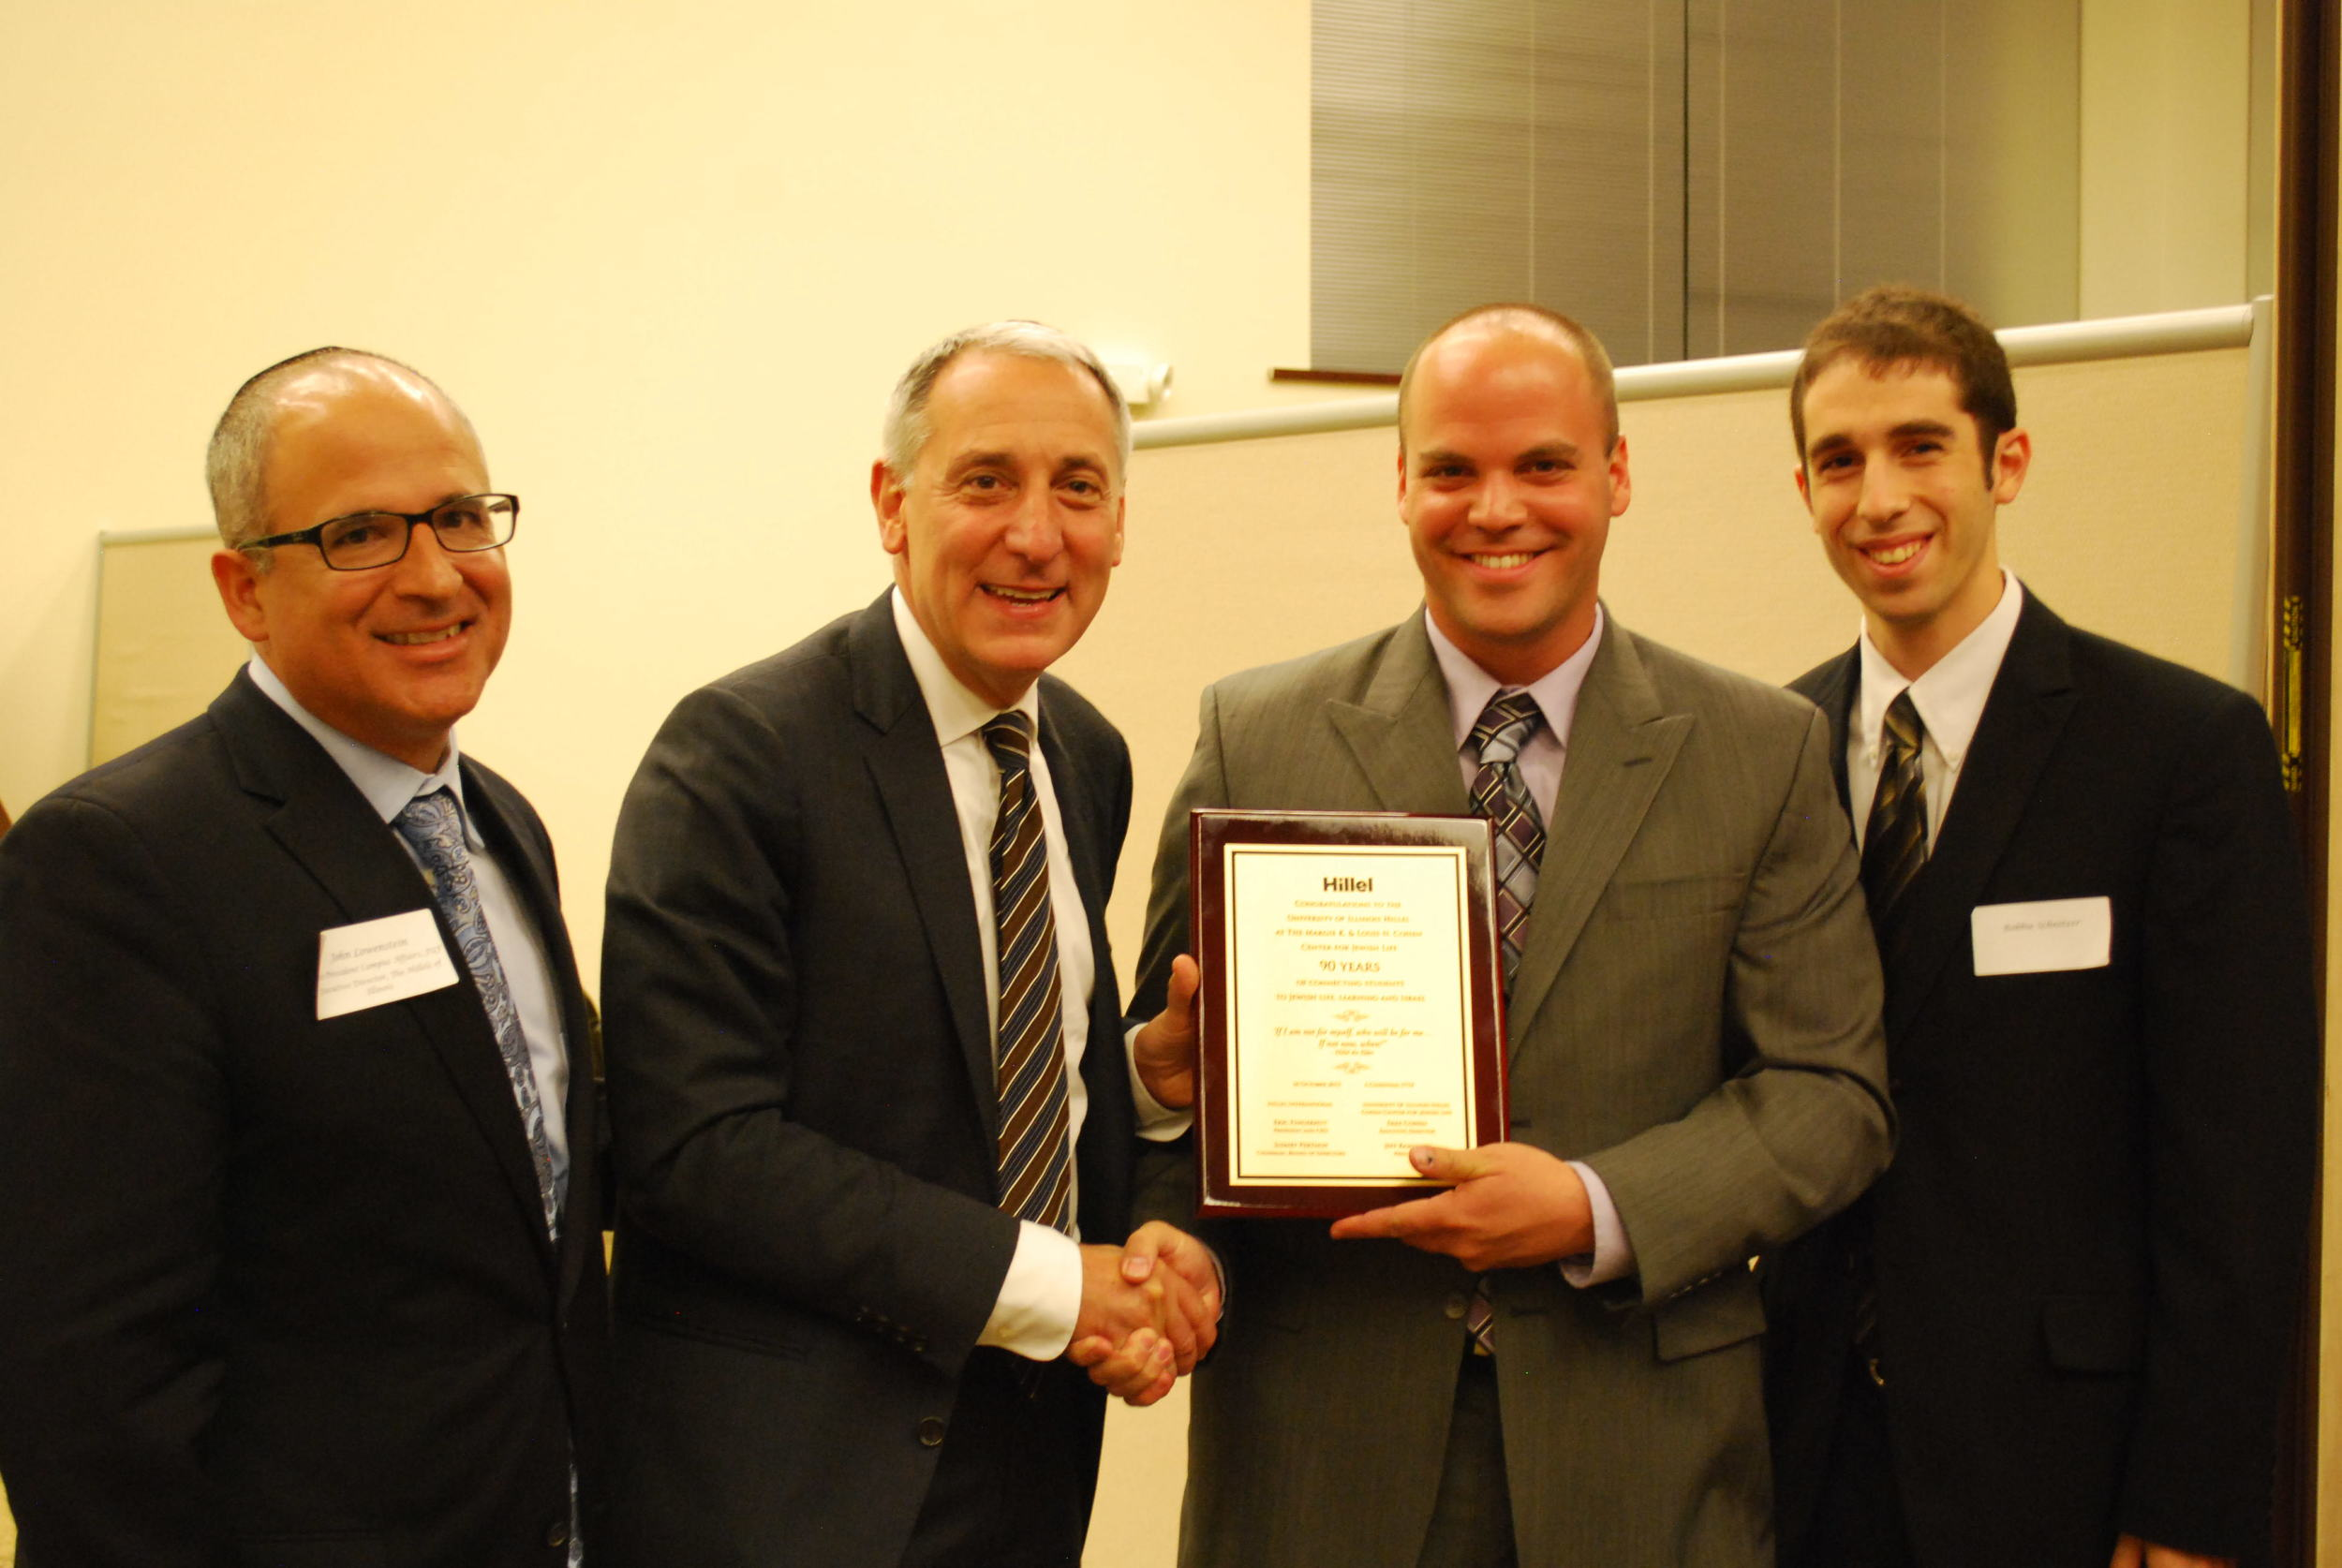 "Click photo to download. Caption: Hillel CEO Eric Fingerhut, second from left, on Oct. 10 presents the University of Illinois at Urbana-Champaign's (UIUC) Illini Hillel with a plaque celebrating its 90th anniversary. UIUC was the birthplace of the Hillel movement. Holding the plaque is Erez Cohen, director of Illini Hillel. Credit: Hillel: The Foundation for Jewish Campus Life.                 0     0     1     7     39     JNS     1     1     45     14.0                            Normal     0                     false     false     false         EN-US     JA     X-NONE                                                                                                                                                                                                                                                                                                                                                                                                                                                                                                                                                                                                                                                                                                                    /* Style Definitions */ table.MsoNormalTable 	{mso-style-name:""Table Normal""; 	mso-tstyle-rowband-size:0; 	mso-tstyle-colband-size:0; 	mso-style-noshow:yes; 	mso-style-priority:99; 	mso-style-parent:""""; 	mso-padding-alt:0in 5.4pt 0in 5.4pt; 	mso-para-margin:0in; 	mso-para-margin-bottom:.0001pt; 	mso-pagination:widow-orphan; 	font-size:12.0pt; 	font-family:Cambria; 	mso-ascii-font-family:Cambria; 	mso-ascii-theme-font:minor-latin; 	mso-hansi-font-family:Cambria; 	mso-hansi-theme-font:minor-latin;}                          0     0     1     8     45     JNS     1     1     52     14.0                            Normal     0                     false     false     false         EN-US     JA     X-NONE                                                                                                                                                                                                                                                                                                                                                                                                                                                                                                                                                                                                                                                                                                                    /* Style Definitions */ table.MsoNormalTable 	{mso-style-name:""Table Normal""; 	mso-tstyle-rowband-size:0; 	mso-tstyle-colband-size:0; 	mso-style-noshow:yes; 	mso-style-priority:99; 	mso-style-parent:""""; 	mso-padding-alt:0in 5.4pt 0in 5.4pt; 	mso-para-margin:0in; 	mso-para-margin-bottom:.0001pt; 	mso-pagination:widow-orphan; 	font-size:12.0pt; 	font-family:Cambria; 	mso-ascii-font-family:Cambria; 	mso-ascii-theme-font:minor-latin; 	mso-hansi-font-family:Cambria; 	mso-hansi-theme-font:minor-latin;}                          0     0     1     7     40     JNS     1     1     46     14.0                            Normal     0                     false     false     false         EN-US     JA     X-NONE                                                                                                                                                                                                                                                                                                                                                                                                                                                                                                                                                                                                                                                                                                                    /* Style Definitions */ table.MsoNormalTable 	{mso-style-name:""Table Normal""; 	mso-tstyle-rowband-size:0; 	mso-tstyle-colband-size:0; 	mso-style-noshow:yes; 	mso-style-priority:99; 	mso-style-parent:""""; 	mso-padding-alt:0in 5.4pt 0in 5.4pt; 	mso-para-margin:0in; 	mso-para-margin-bottom:.0001pt; 	mso-pagination:widow-orphan; 	font-size:12.0pt; 	font-family:Cambria; 	mso-ascii-font-family:Cambria; 	mso-ascii-theme-font:minor-latin; 	mso-hansi-font-family:Cambria; 	mso-hansi-theme-font:minor-latin;}"